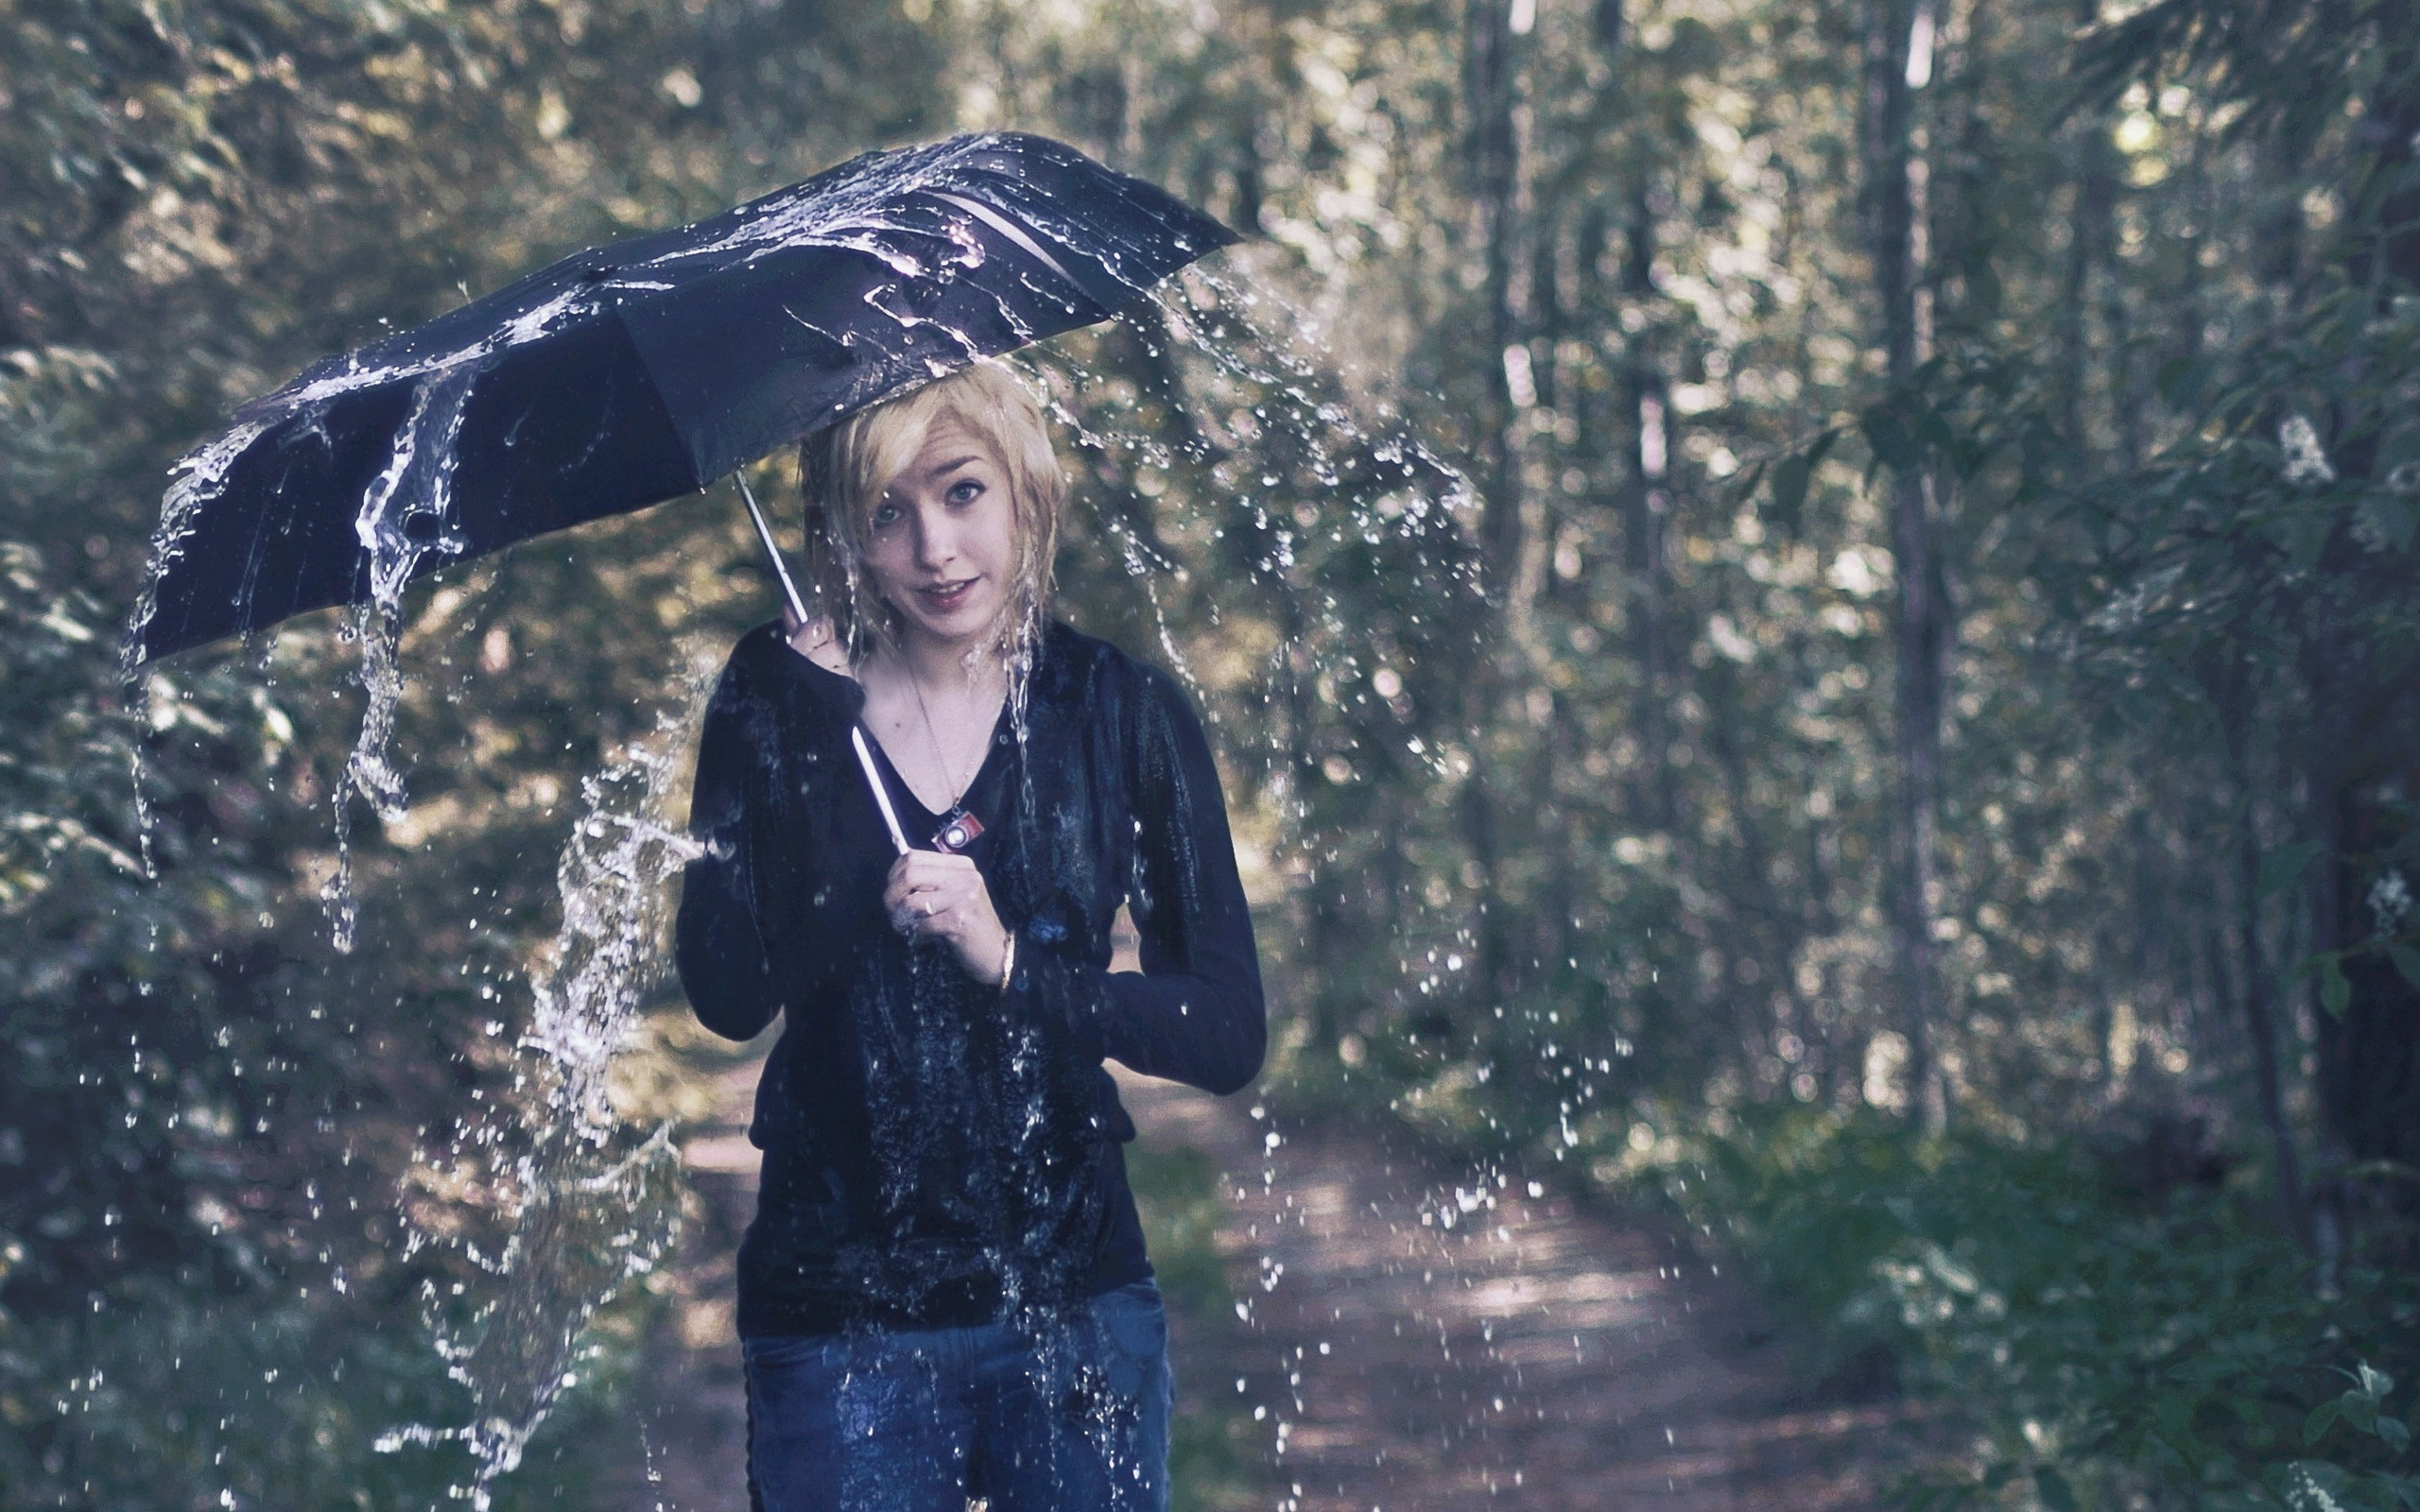 Beautiful Girl Full Screen Wallpaper Umbrella Women Rain Model Wallpapers Hd Desktop And